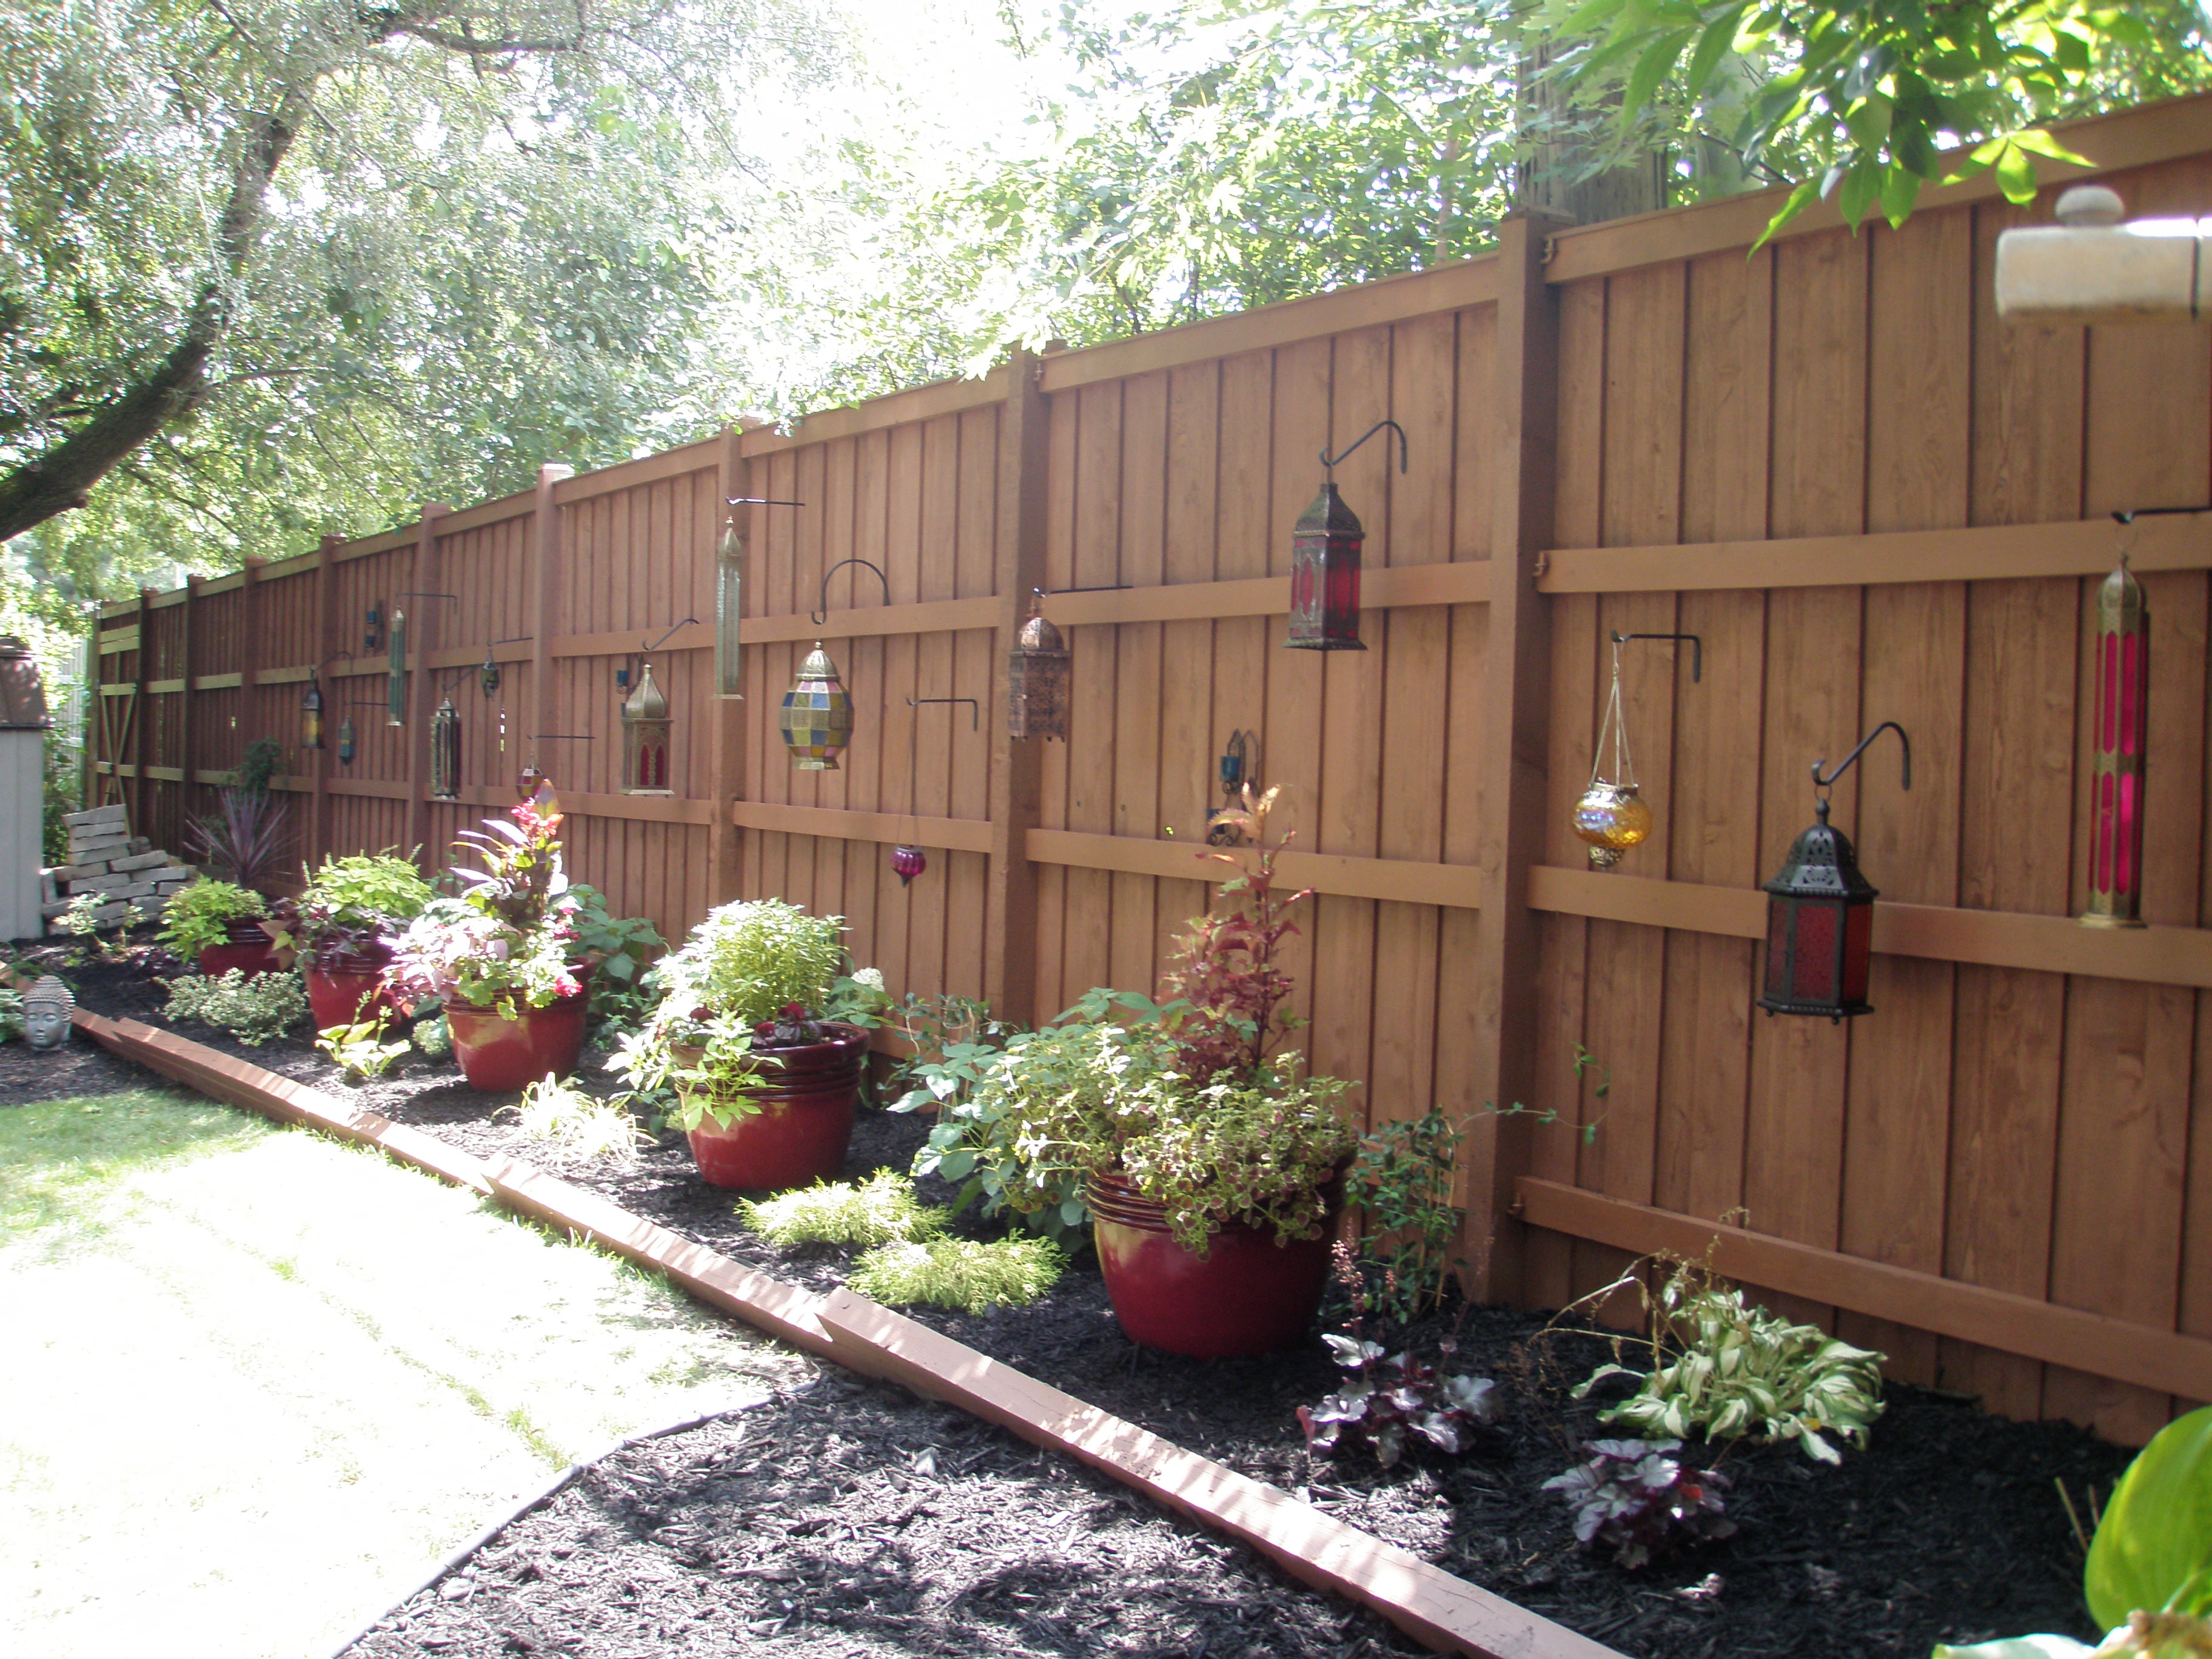 Best ideas about Backyard Fence Ideas . Save or Pin Outdoor Landscape 2011 – Emodel your home Now.